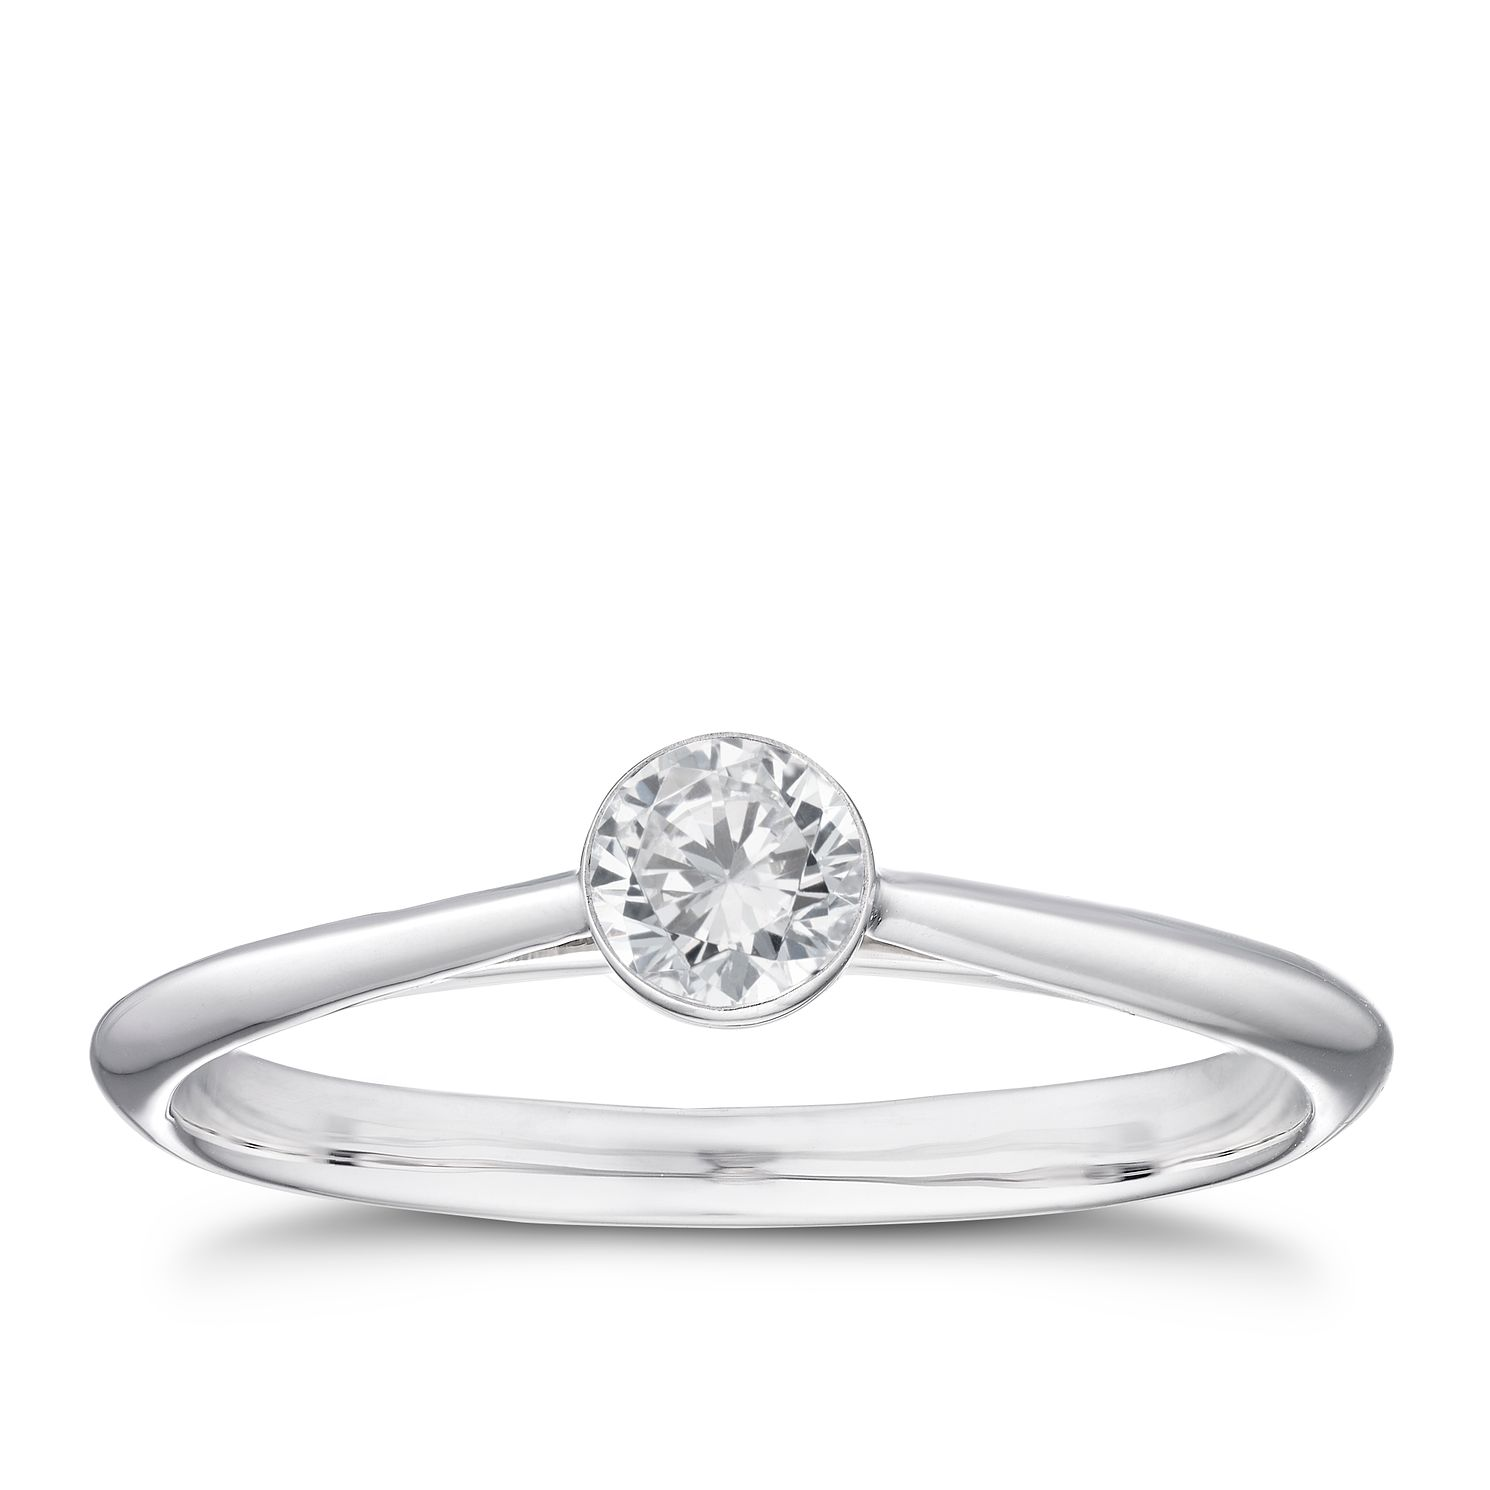 18ct White Gold 1/4ct Diamond Solitaire Ring - Product number 4241878